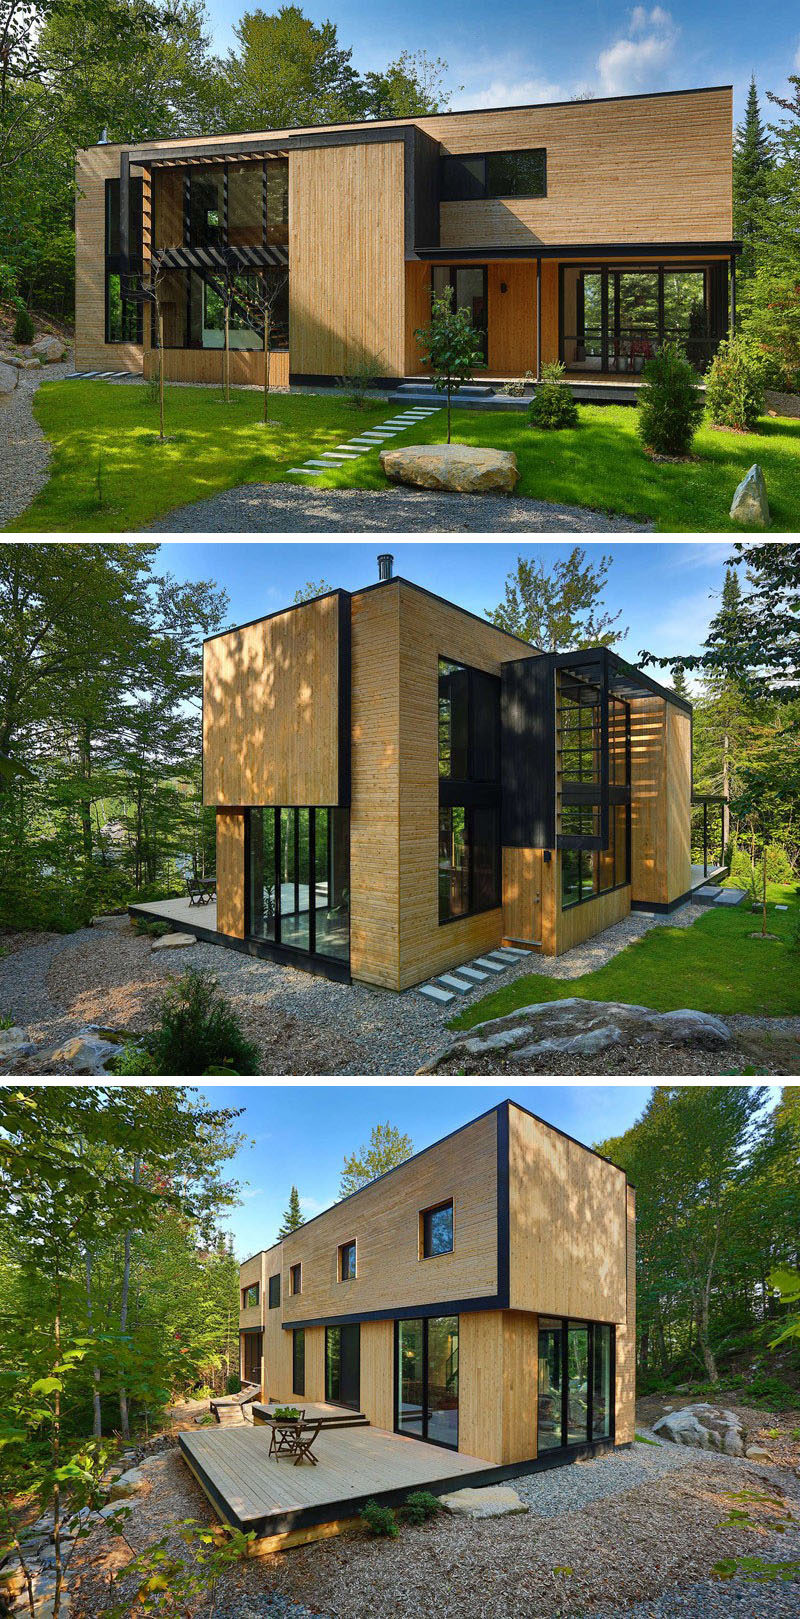 18 Modern House In The Forest // Light colored wood covers the exterior of this house surrounded by forest, helping it fit right in among the rest of the wood in the forest. #ModernHouse #ModernArchitecture #HouseInForest #HouseDesign